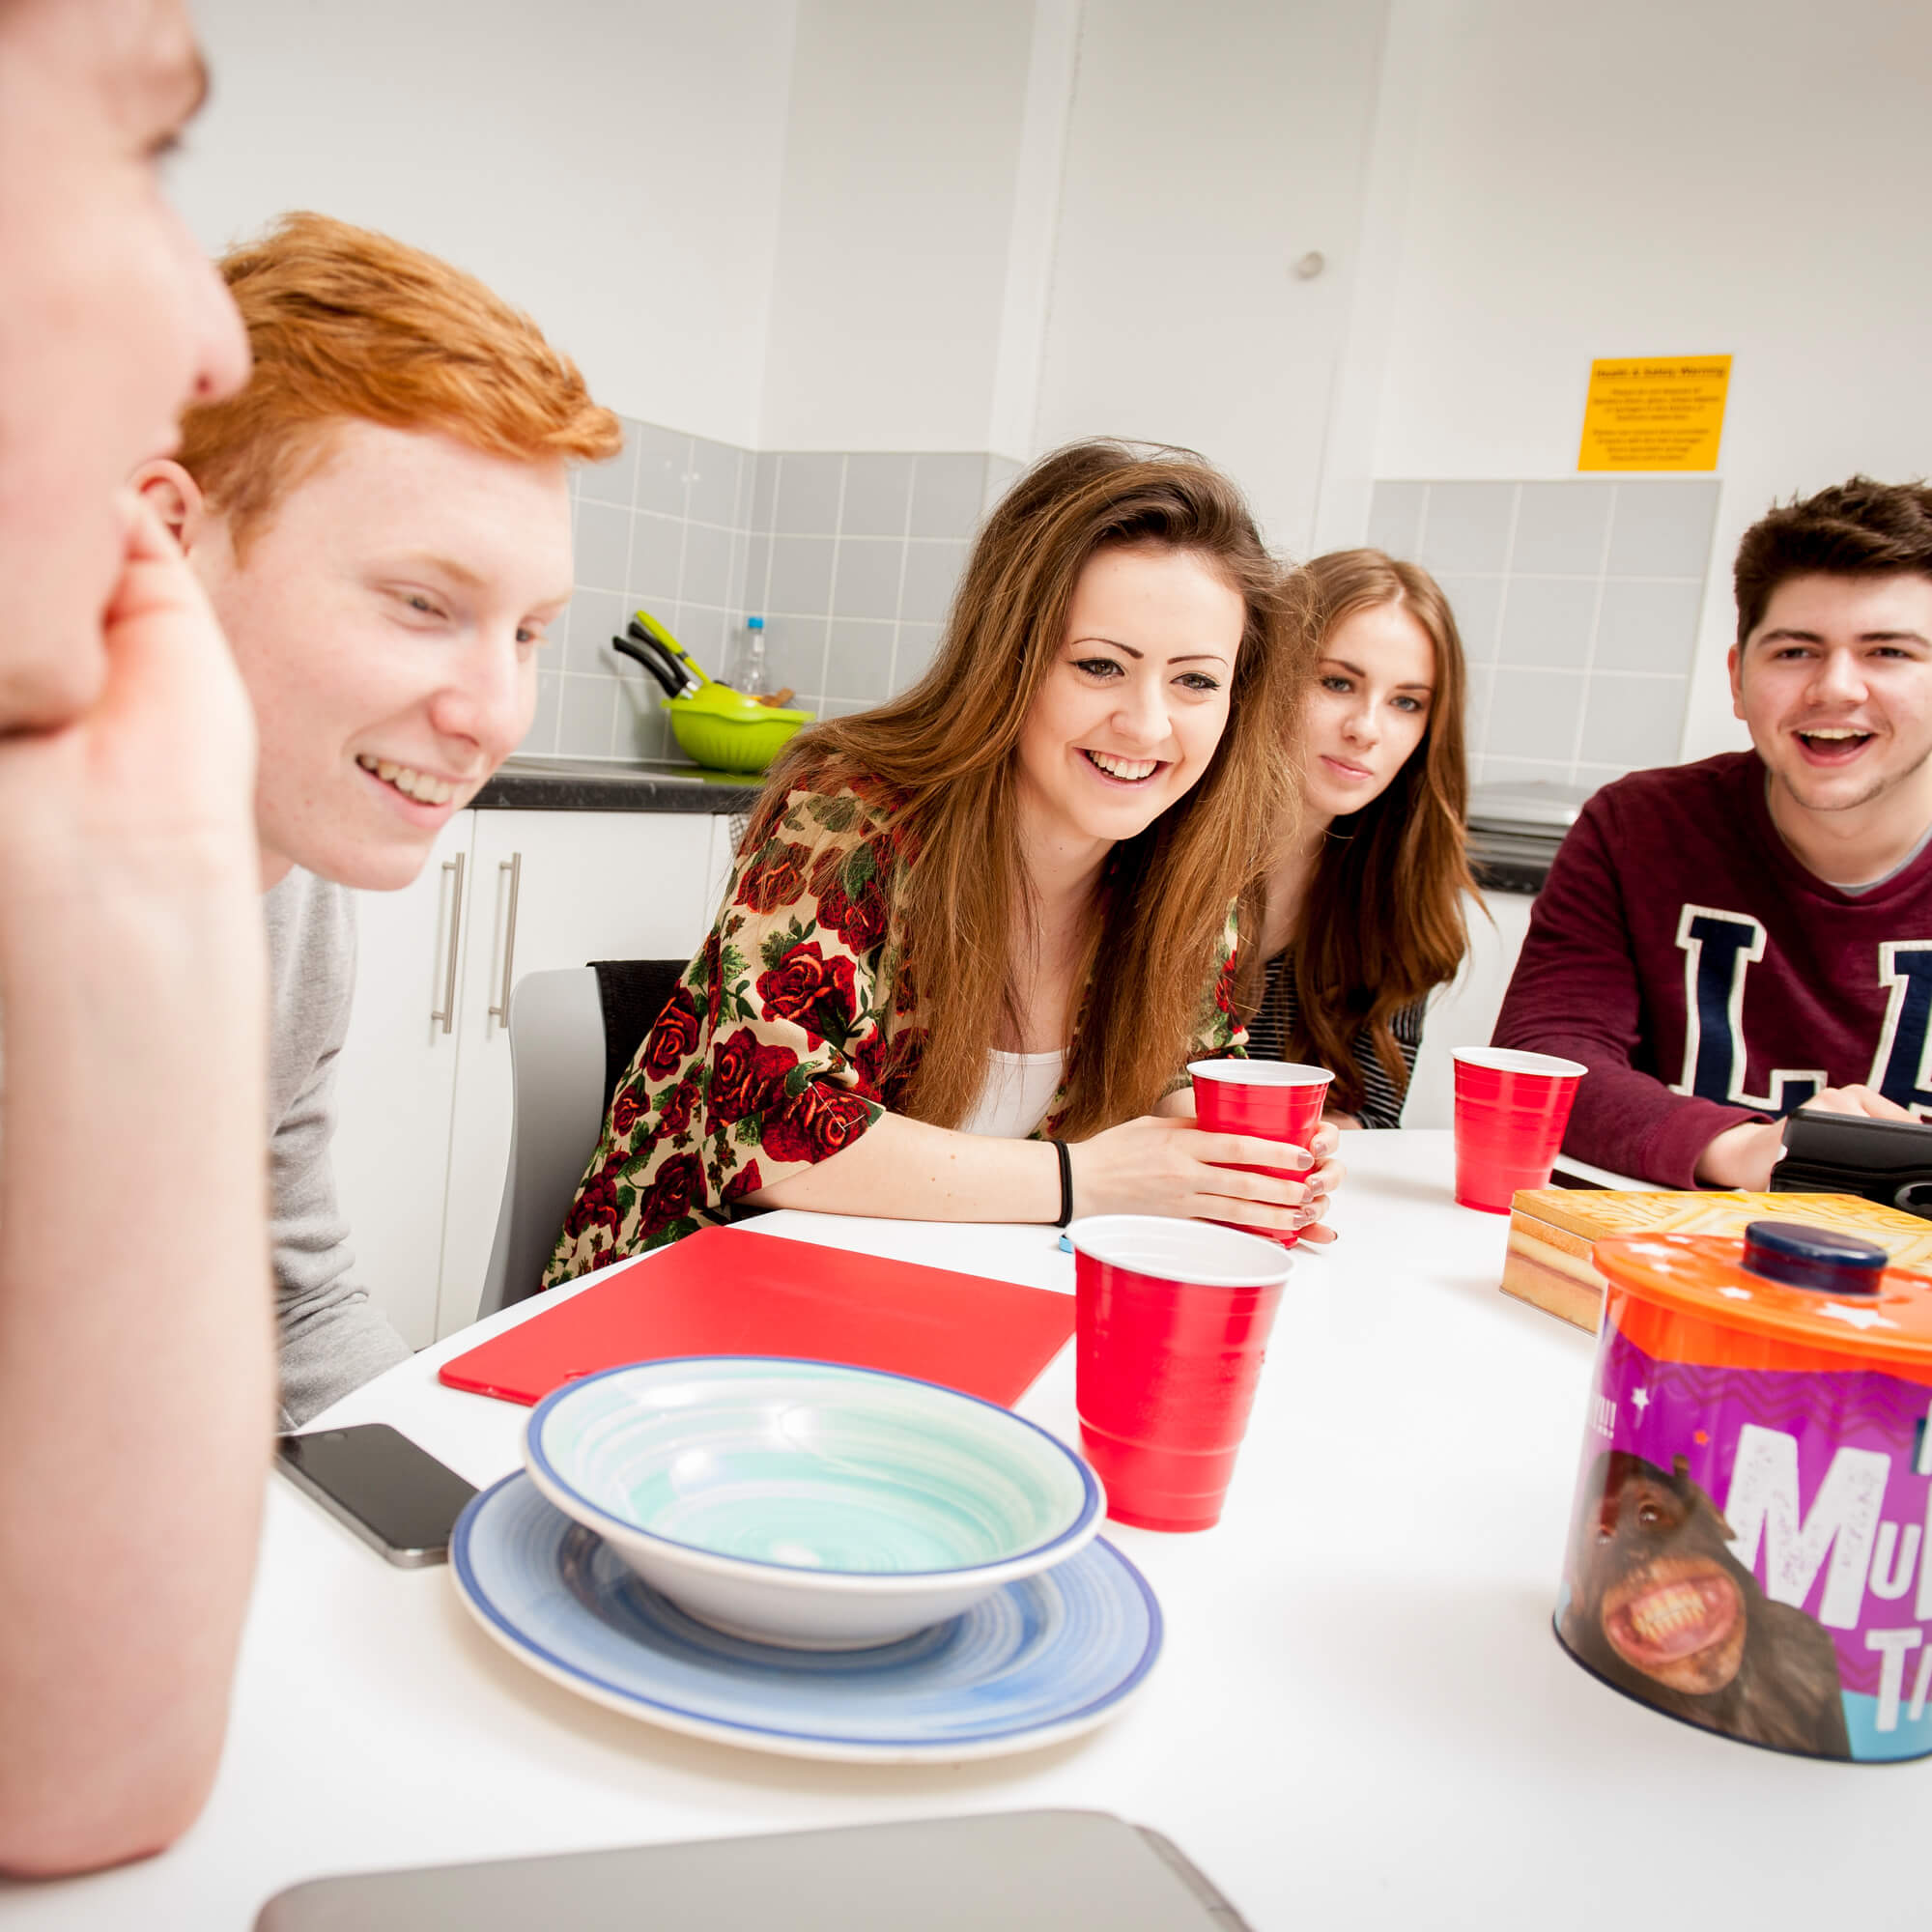 Five students sitting round a table in halls of residence